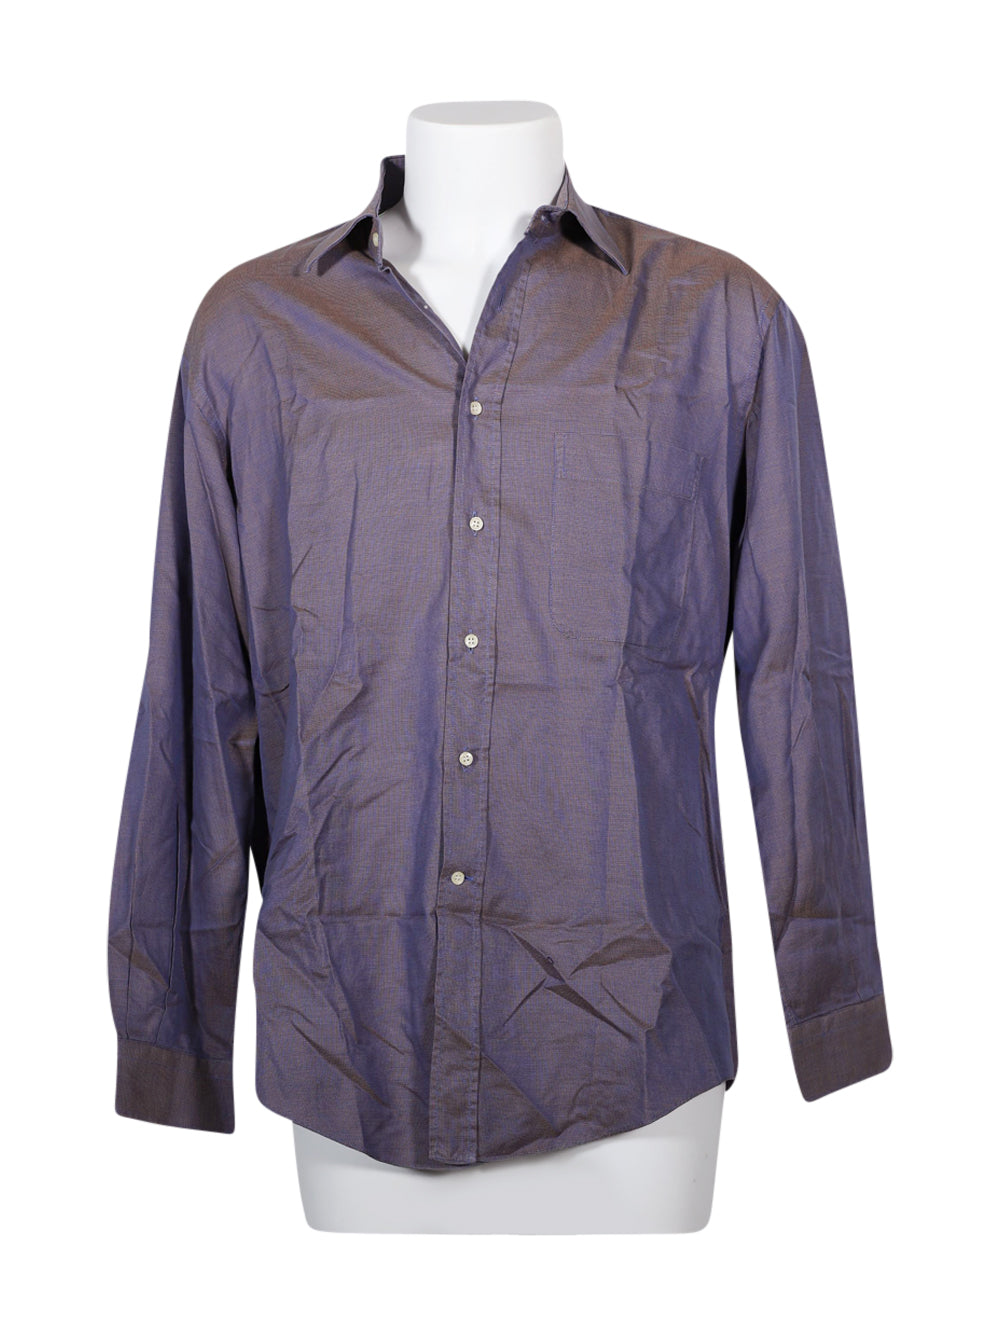 Front photo of Preloved Ermenegildo zegna Violet Man's shirt - size 32/XXS